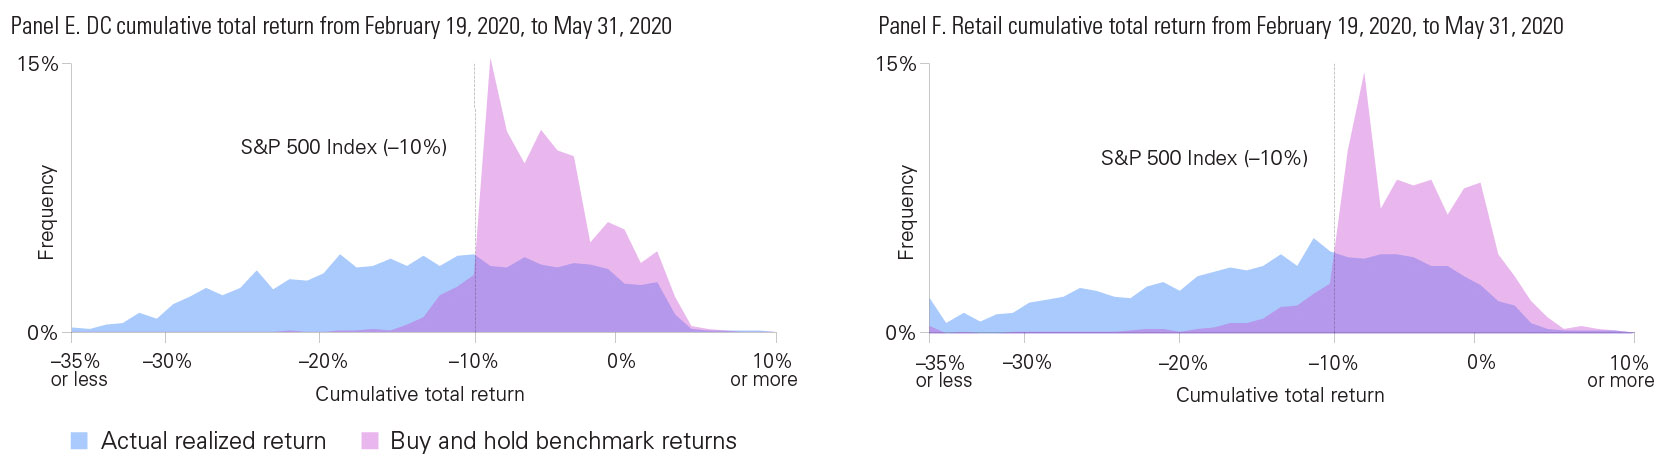 Actual total returns of cash panickers compared with buy and hold